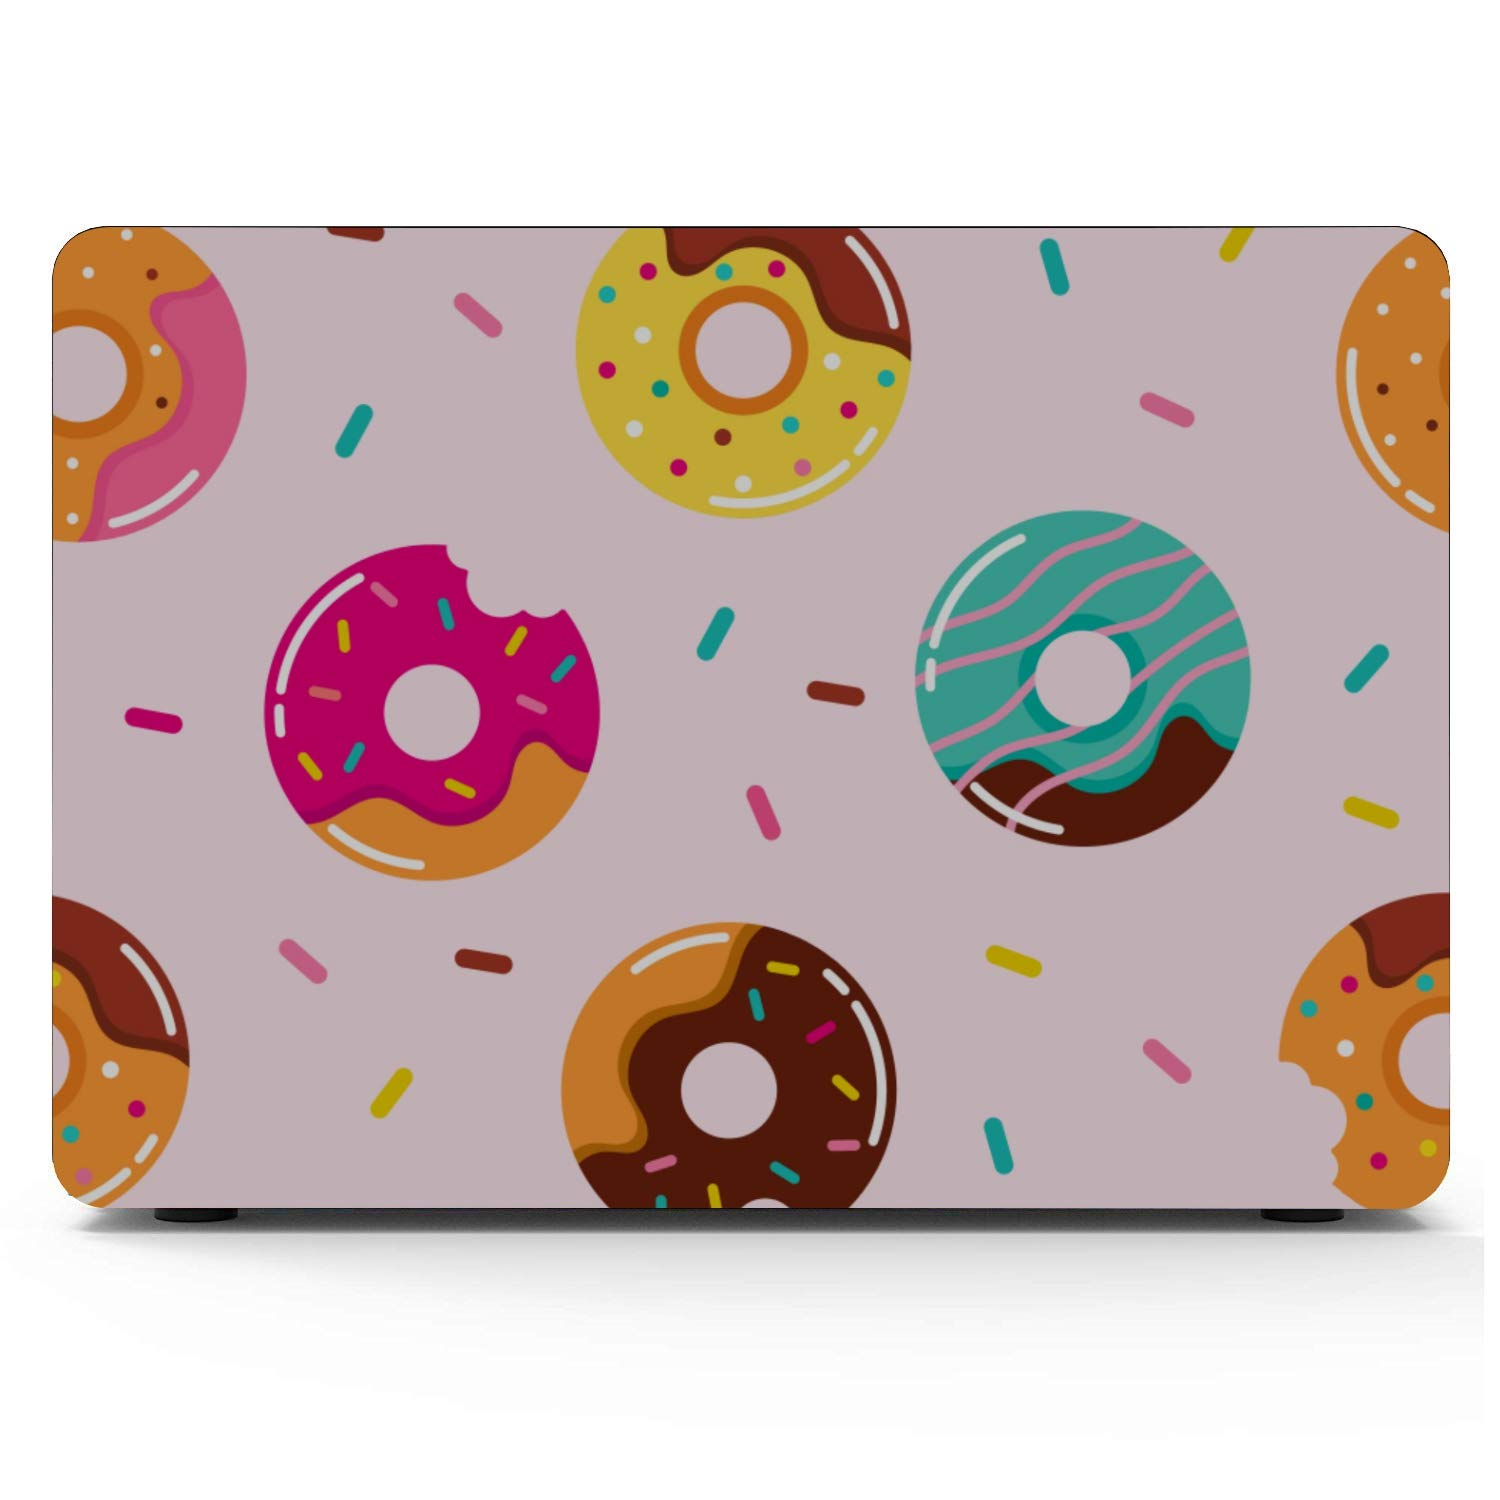 Mac Book Air Covers Sweets Delicious Cute Cake Donuts Plastic Hard Shell Compatible Mac Air 11 Pro 13 15 12inch MacBook Case Protection for MacBook 2016-2019 Version